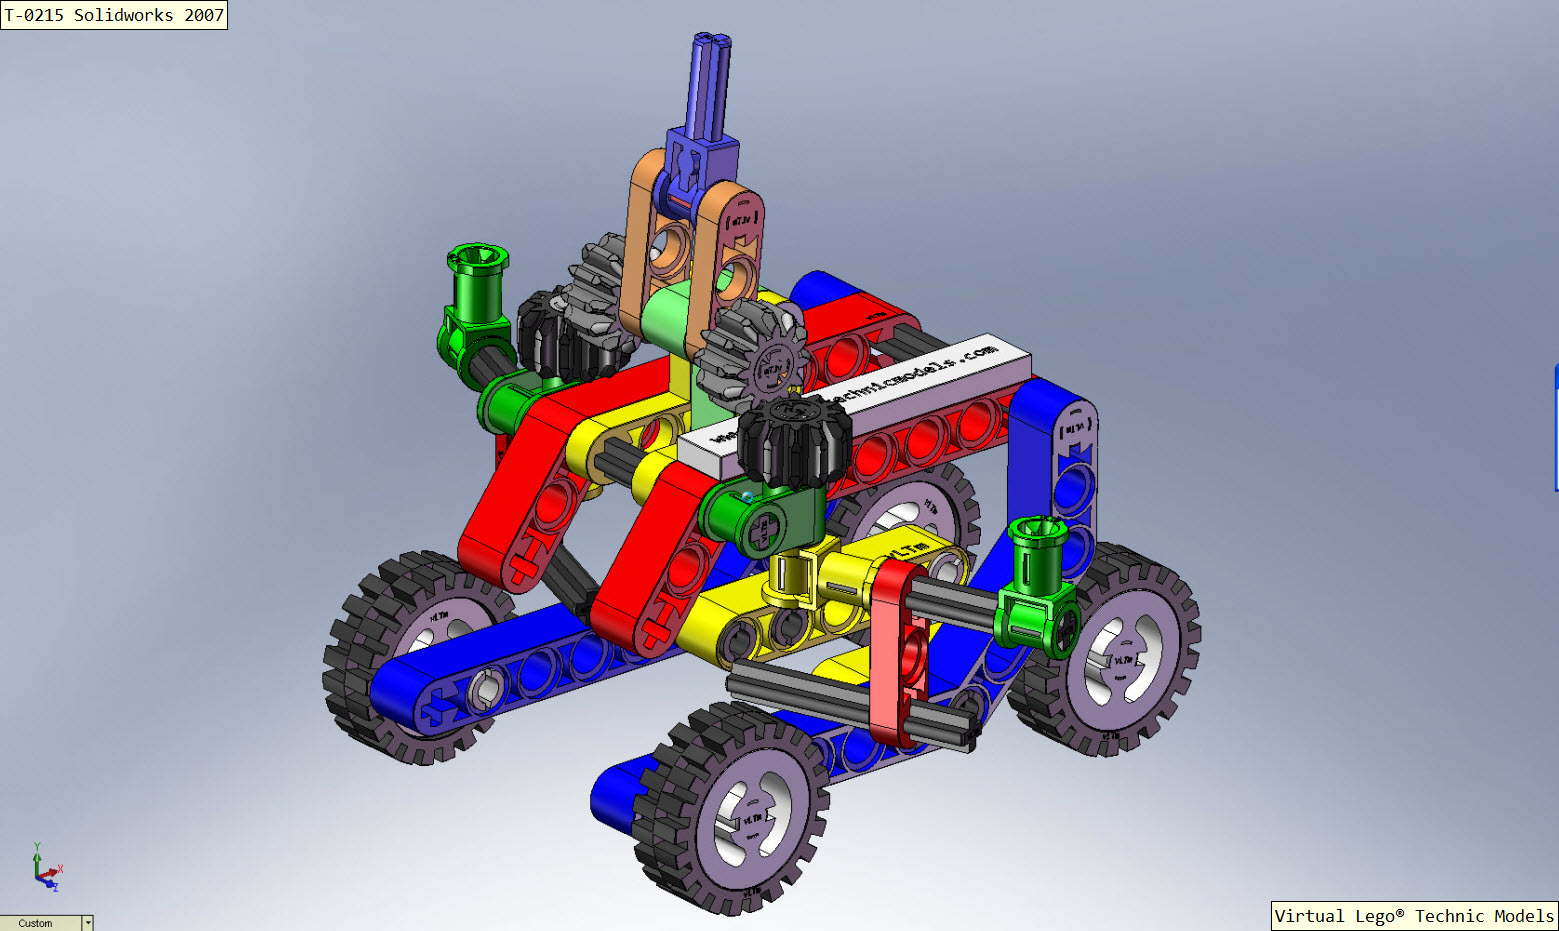 t-0215-03-solidworks_2007.jpg